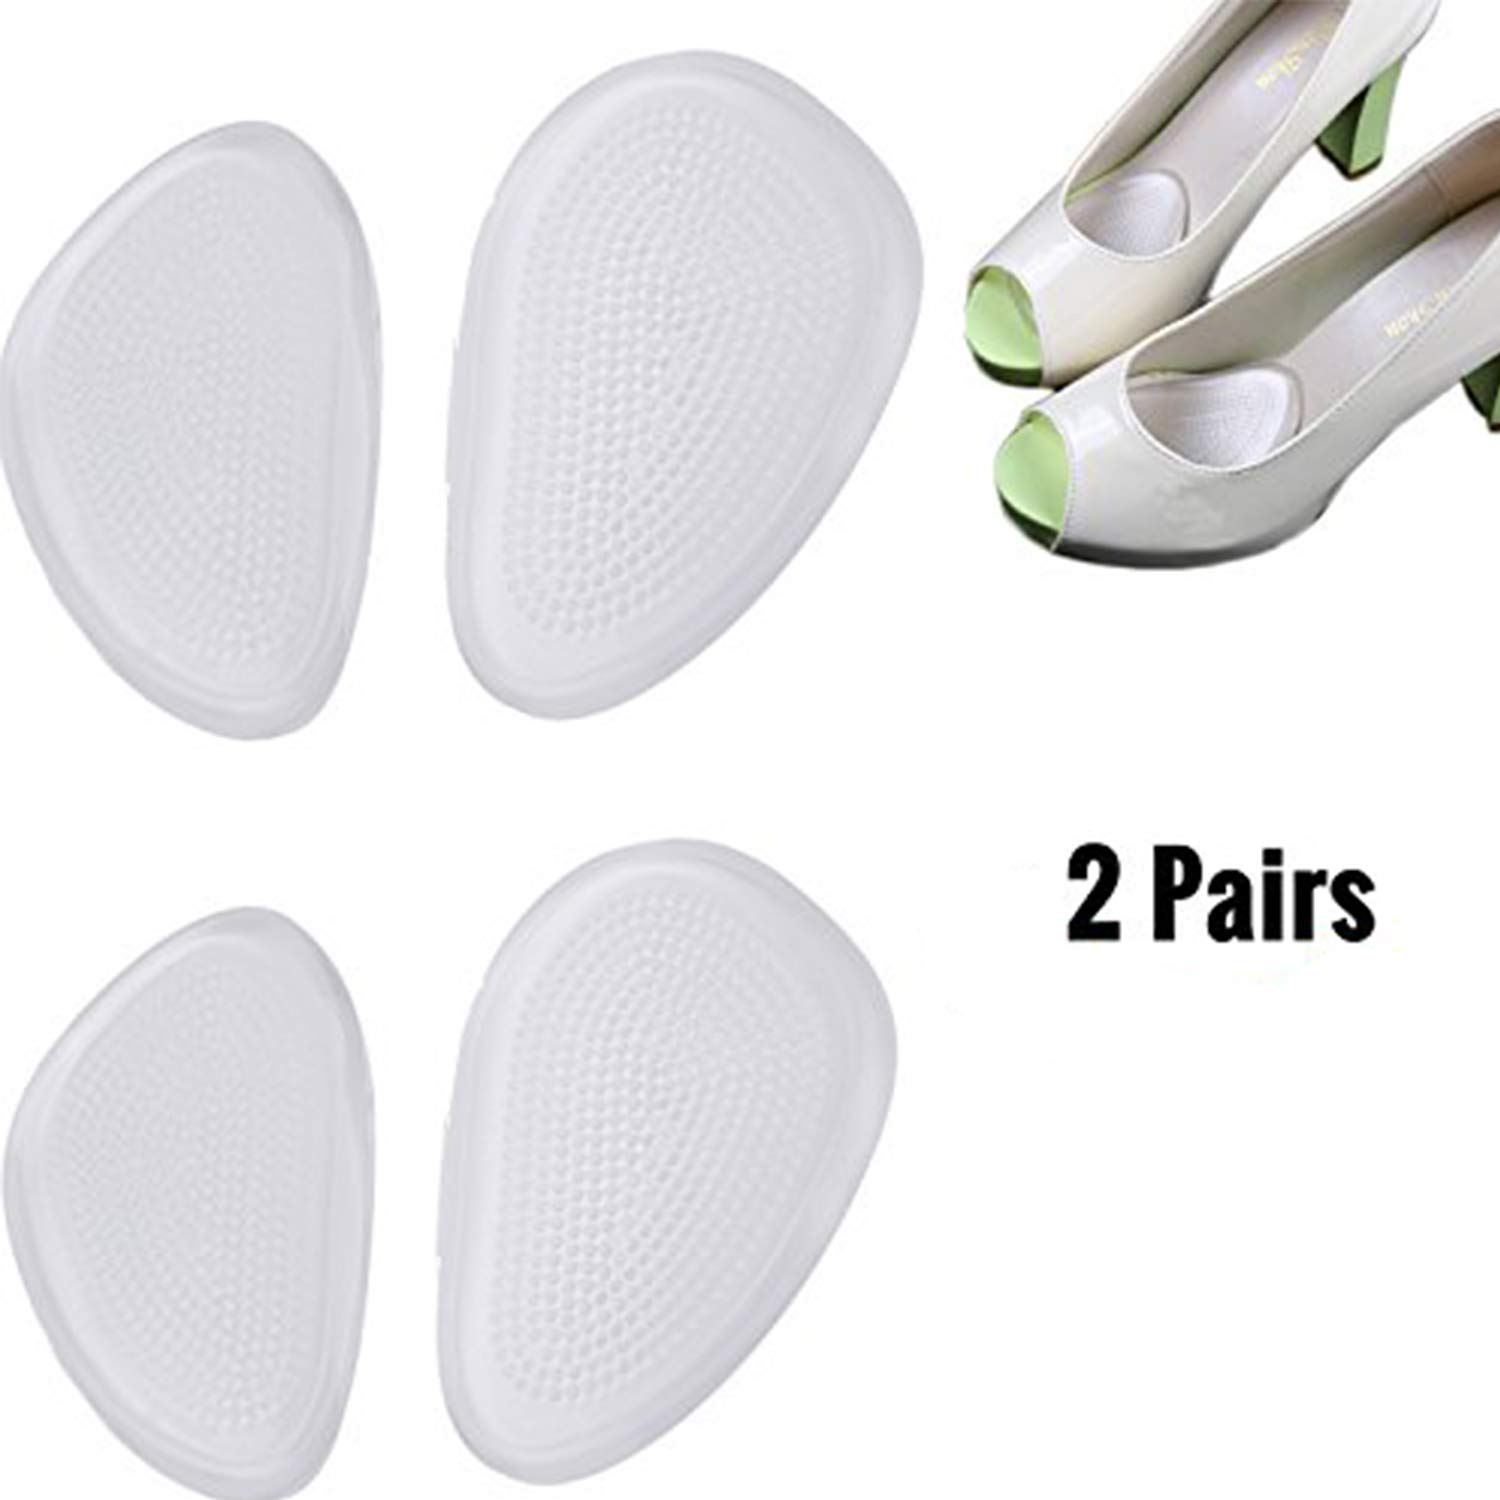 DODOING Metatarsal Pads Cushion Pain Relief and Comfort One Size Fits Shoe Inserts Transparent Foot Pads Gel(2 Pairs Shoe Insert)